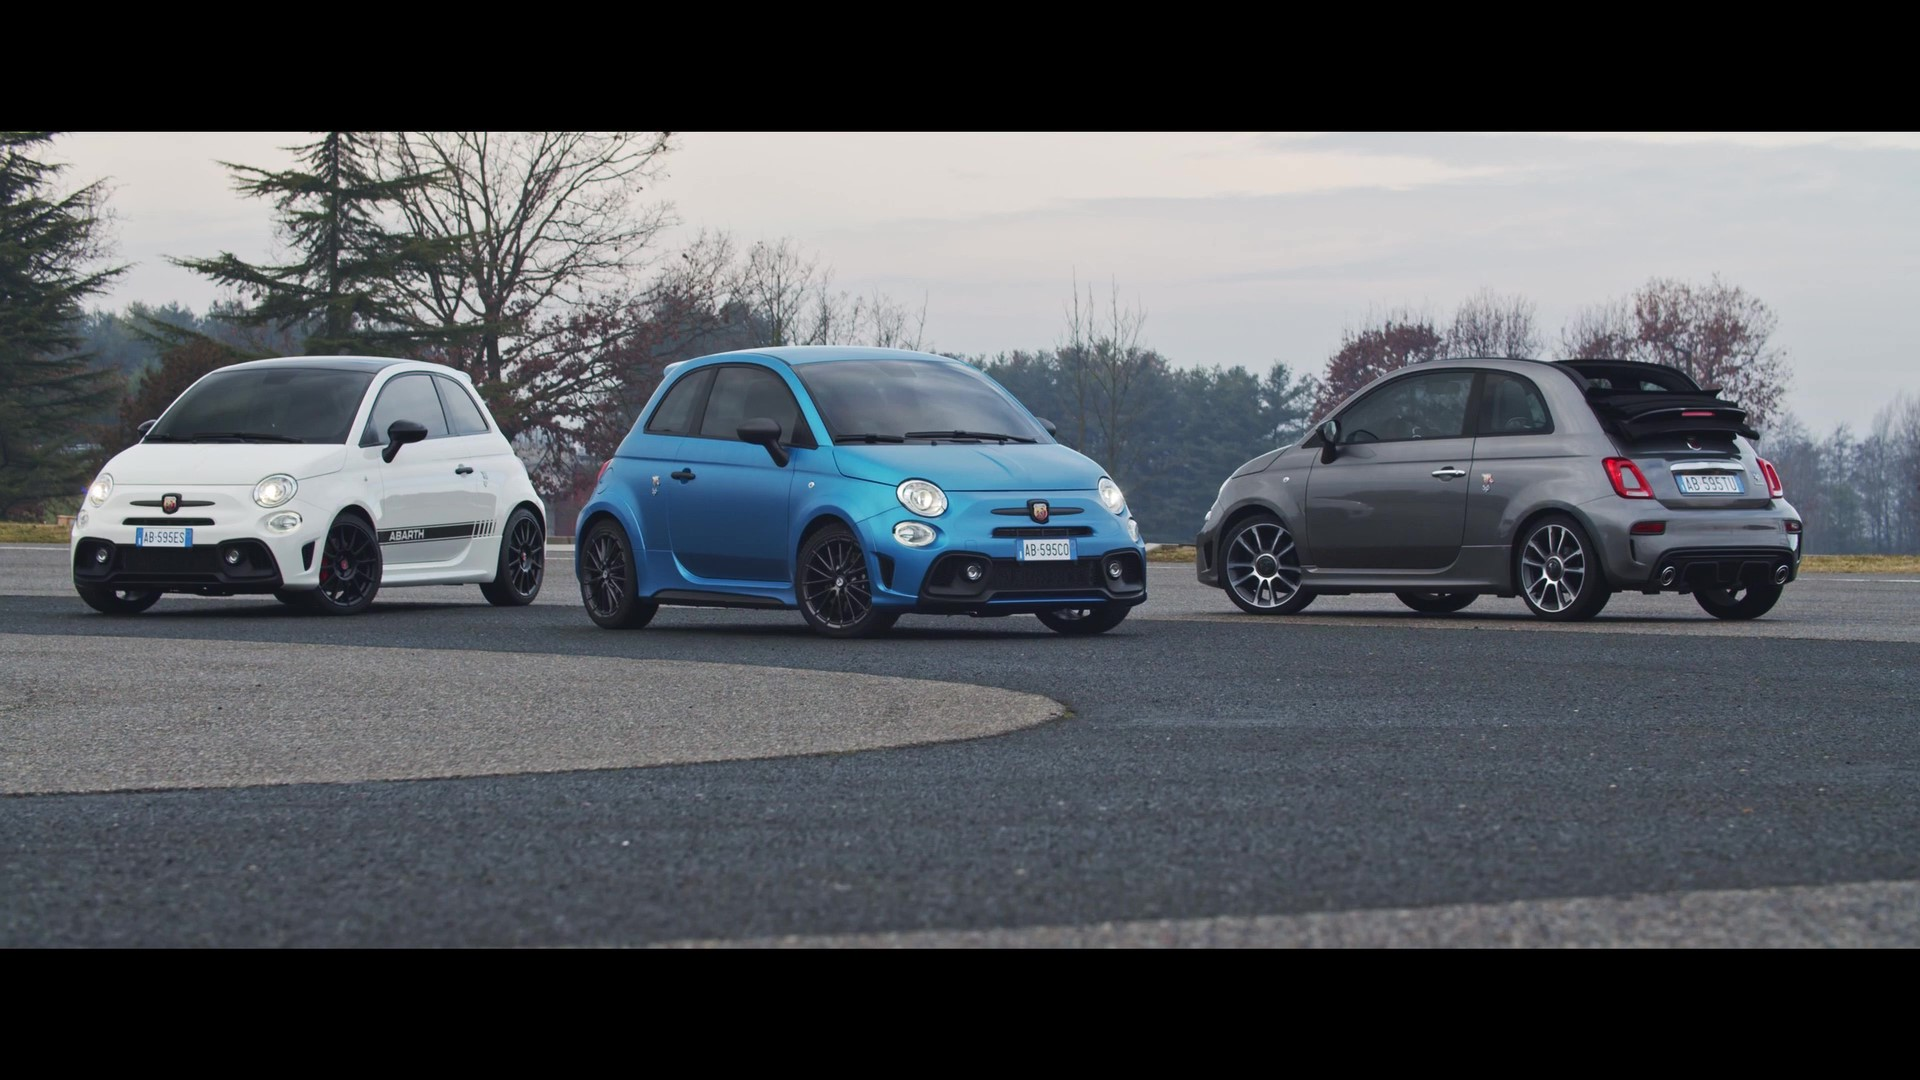 New Abarth 595 range - Videoclip